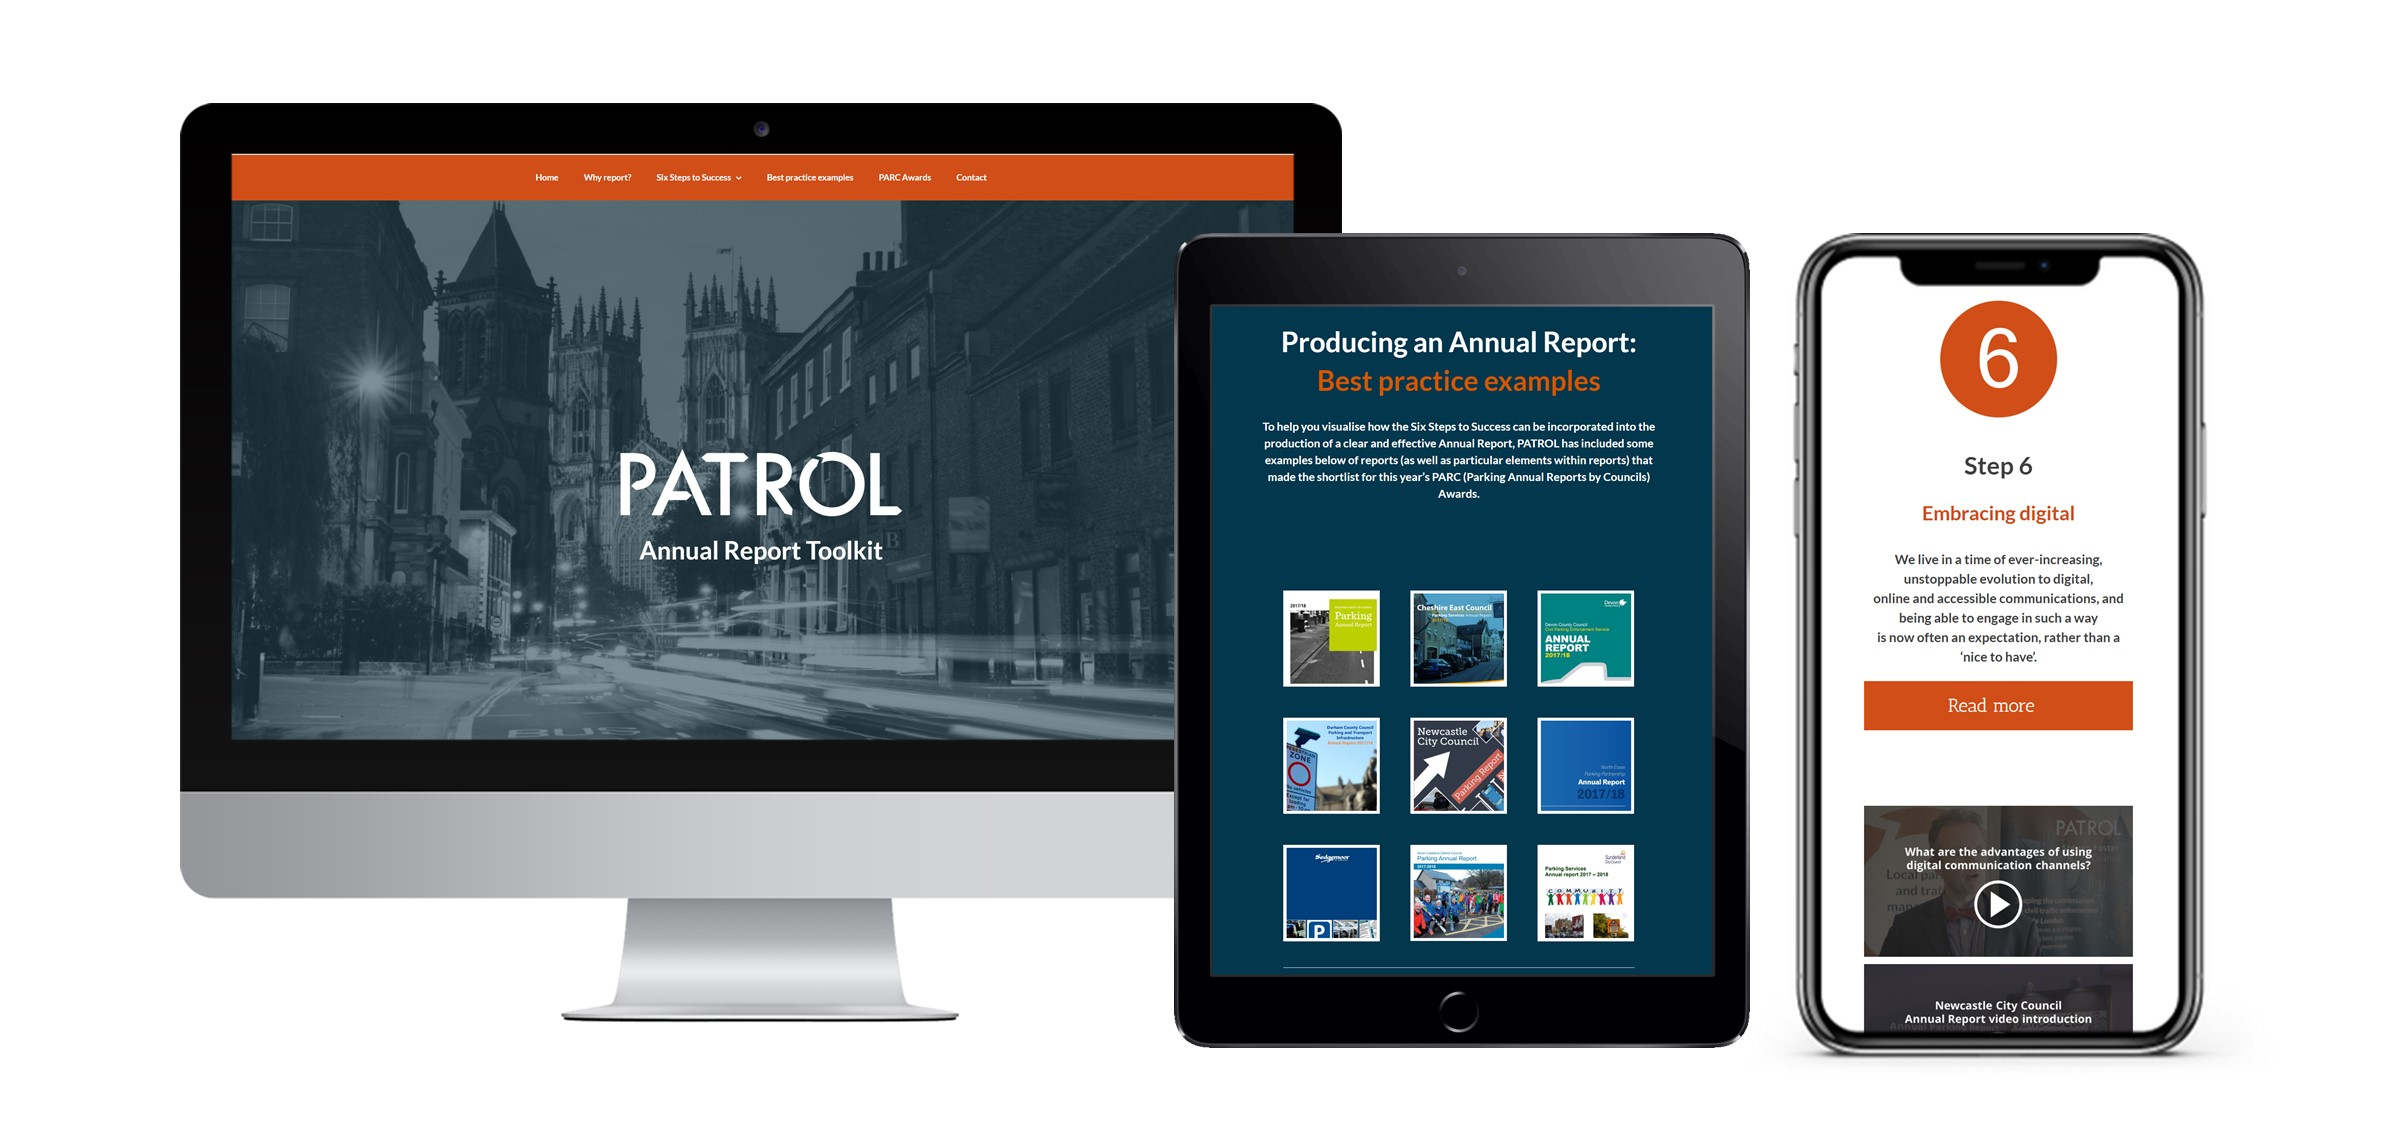 Screenshots of different sections of the PATROL Annual Report Toolkit, shown on a widescreen monitor, tablet and smartphone